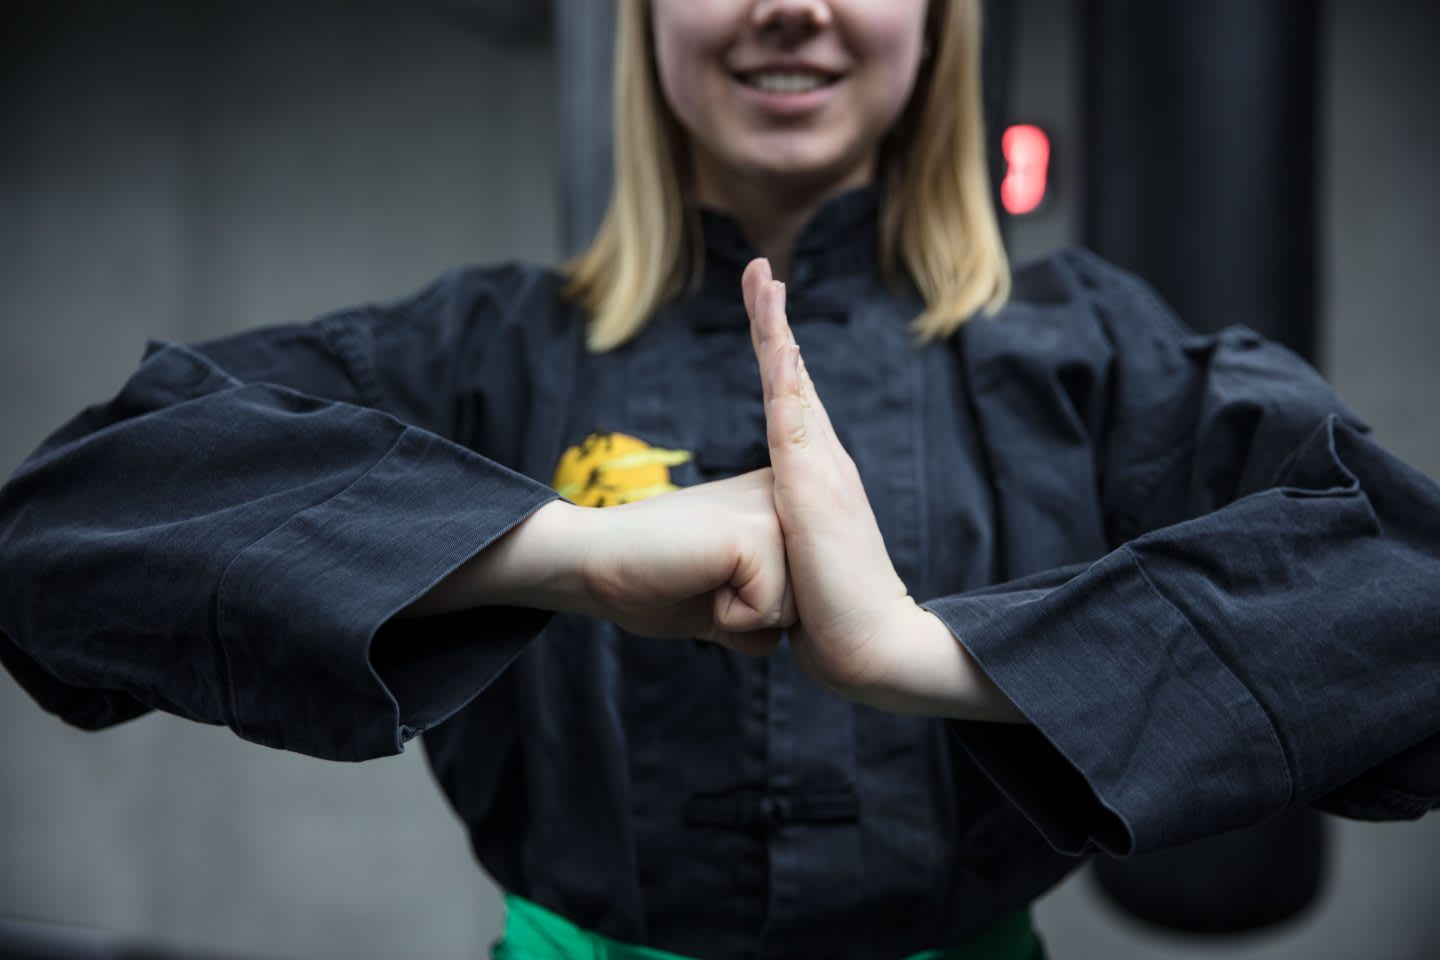 A woman wearing a black traditional kung fu uniform places her hands together in a thankful gesture. kung fu, respect, tradition, thanks